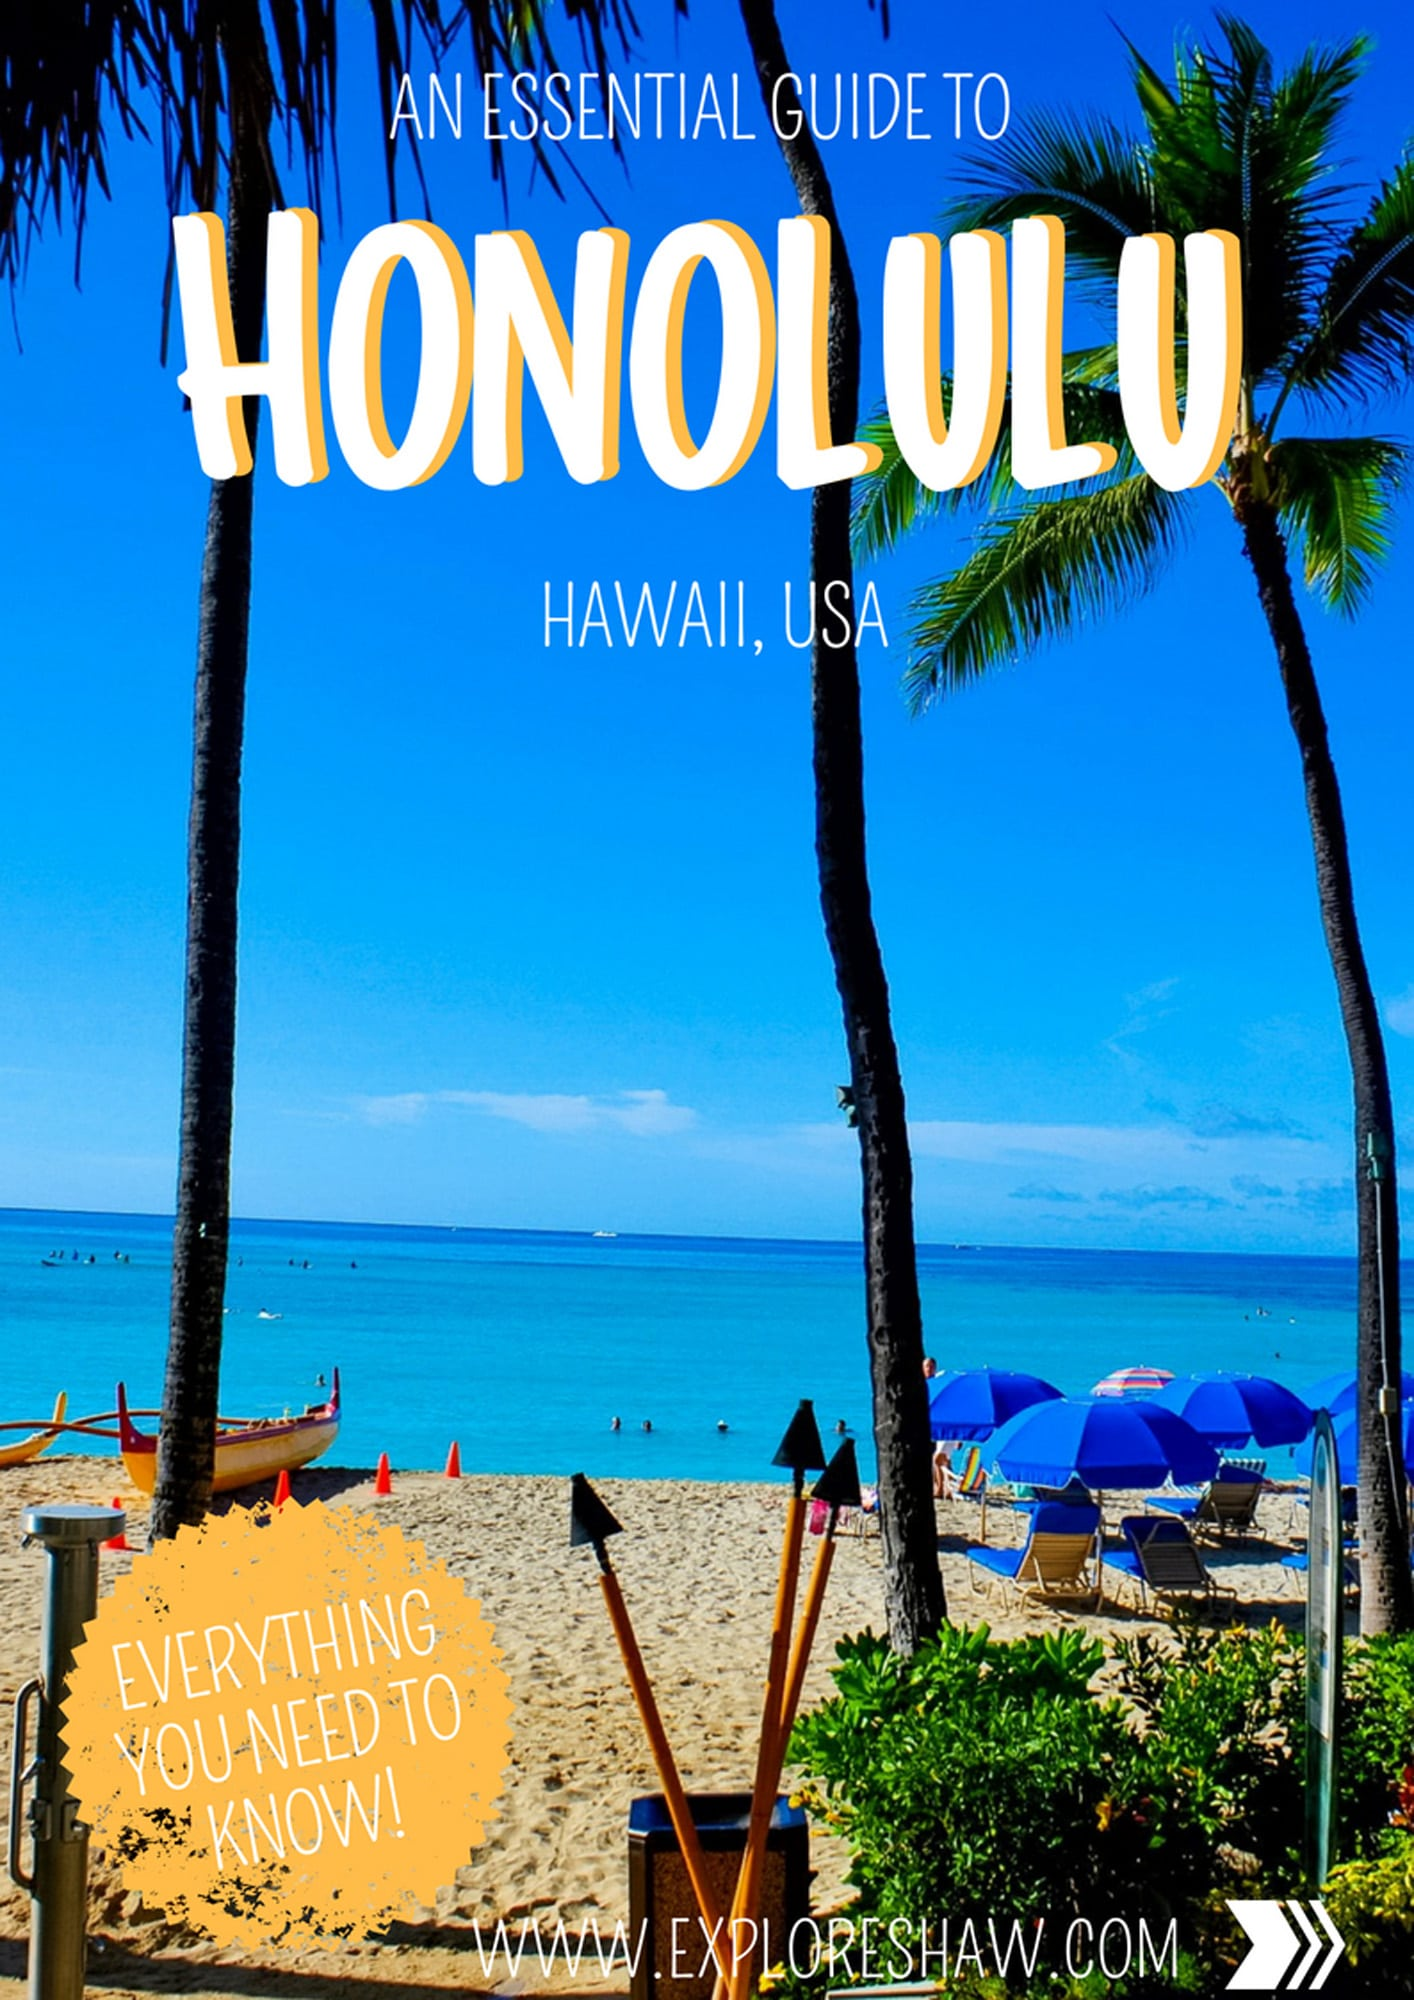 AN ESSENTIAL GUIDE TO HONOLULU